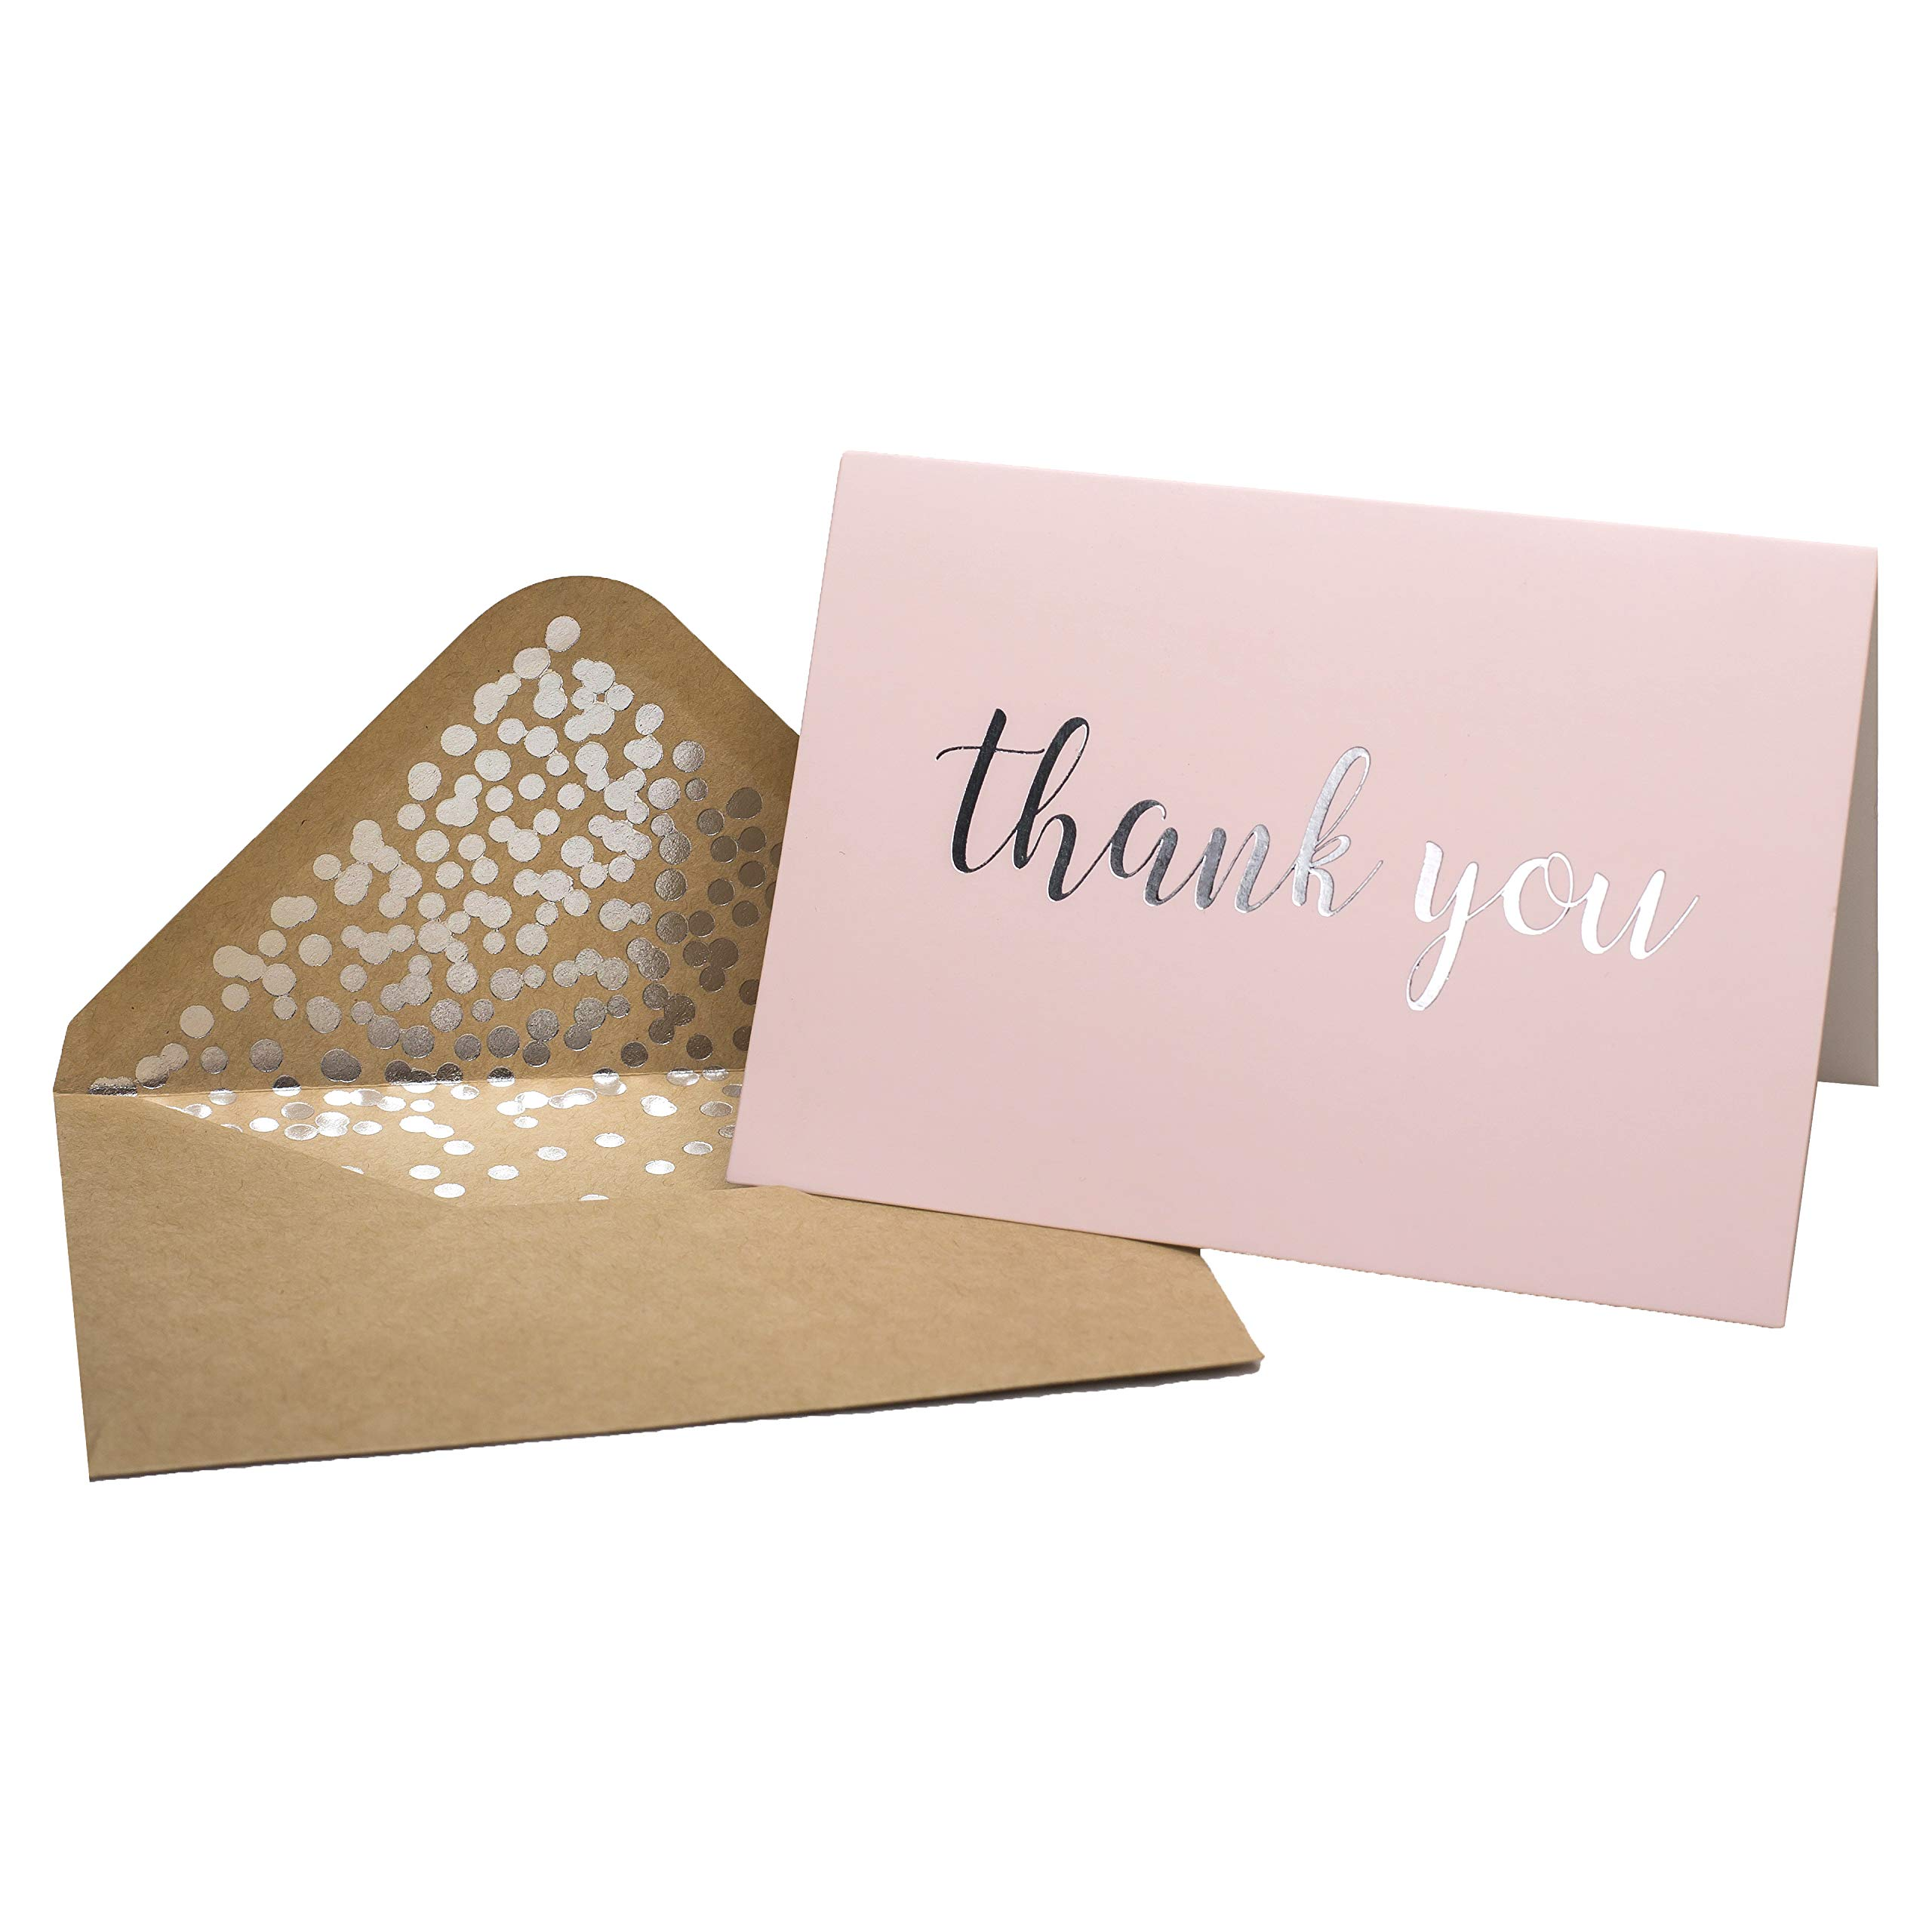 Thank You Cards - Blank 50 Pack Pink Matte Finish Thank You Cards with Silver Foiled''Thank You'' Printed with Confetti Design Kraft Envelopes 4'' x 5.75'' - for Bridal Shower Baby Shower Birthday Party